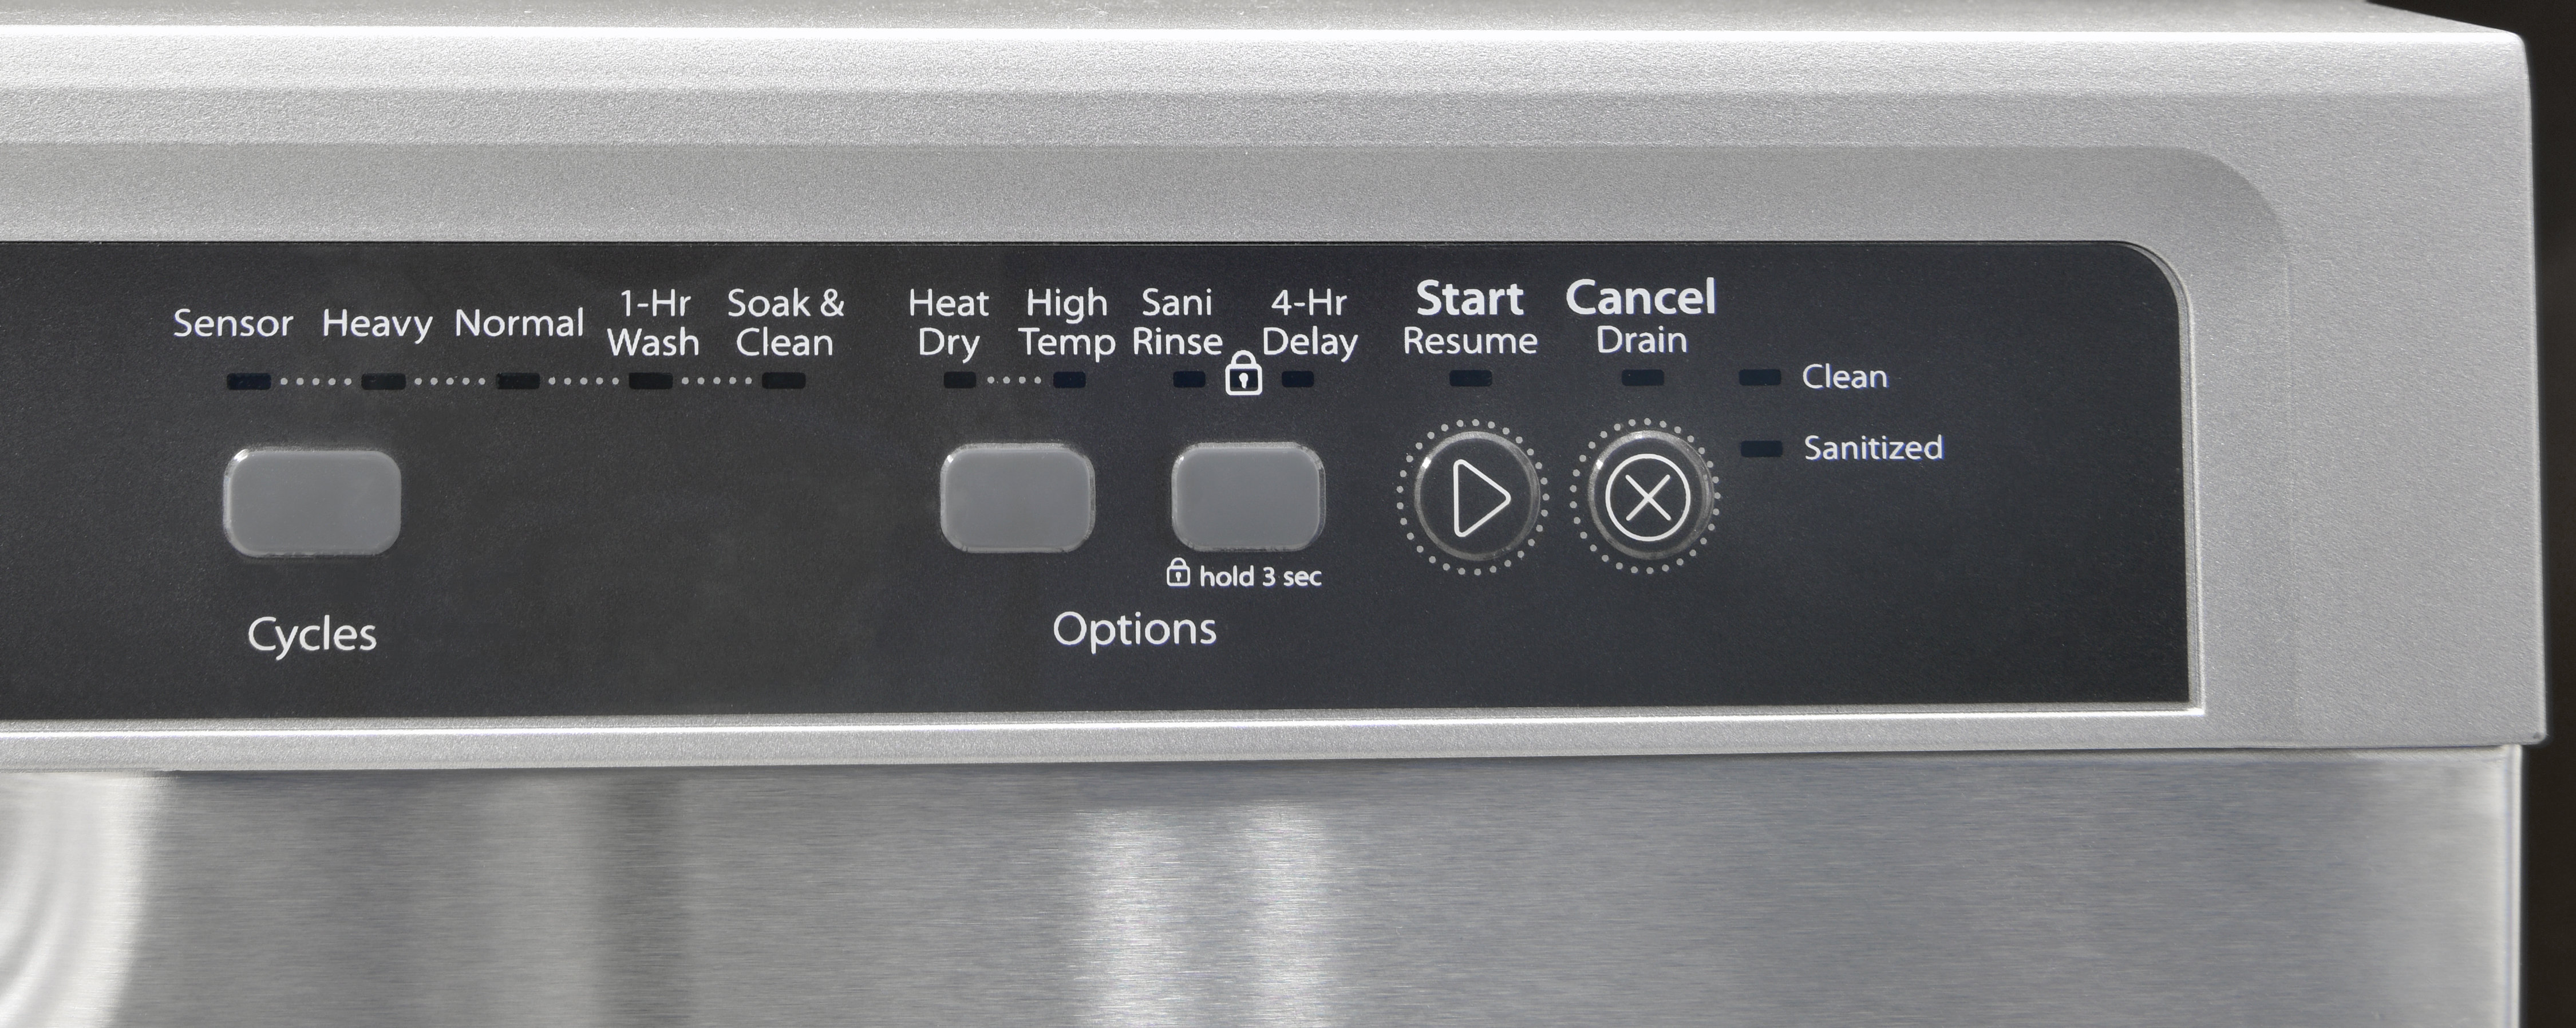 Whirlpool WDF540PADM controls off